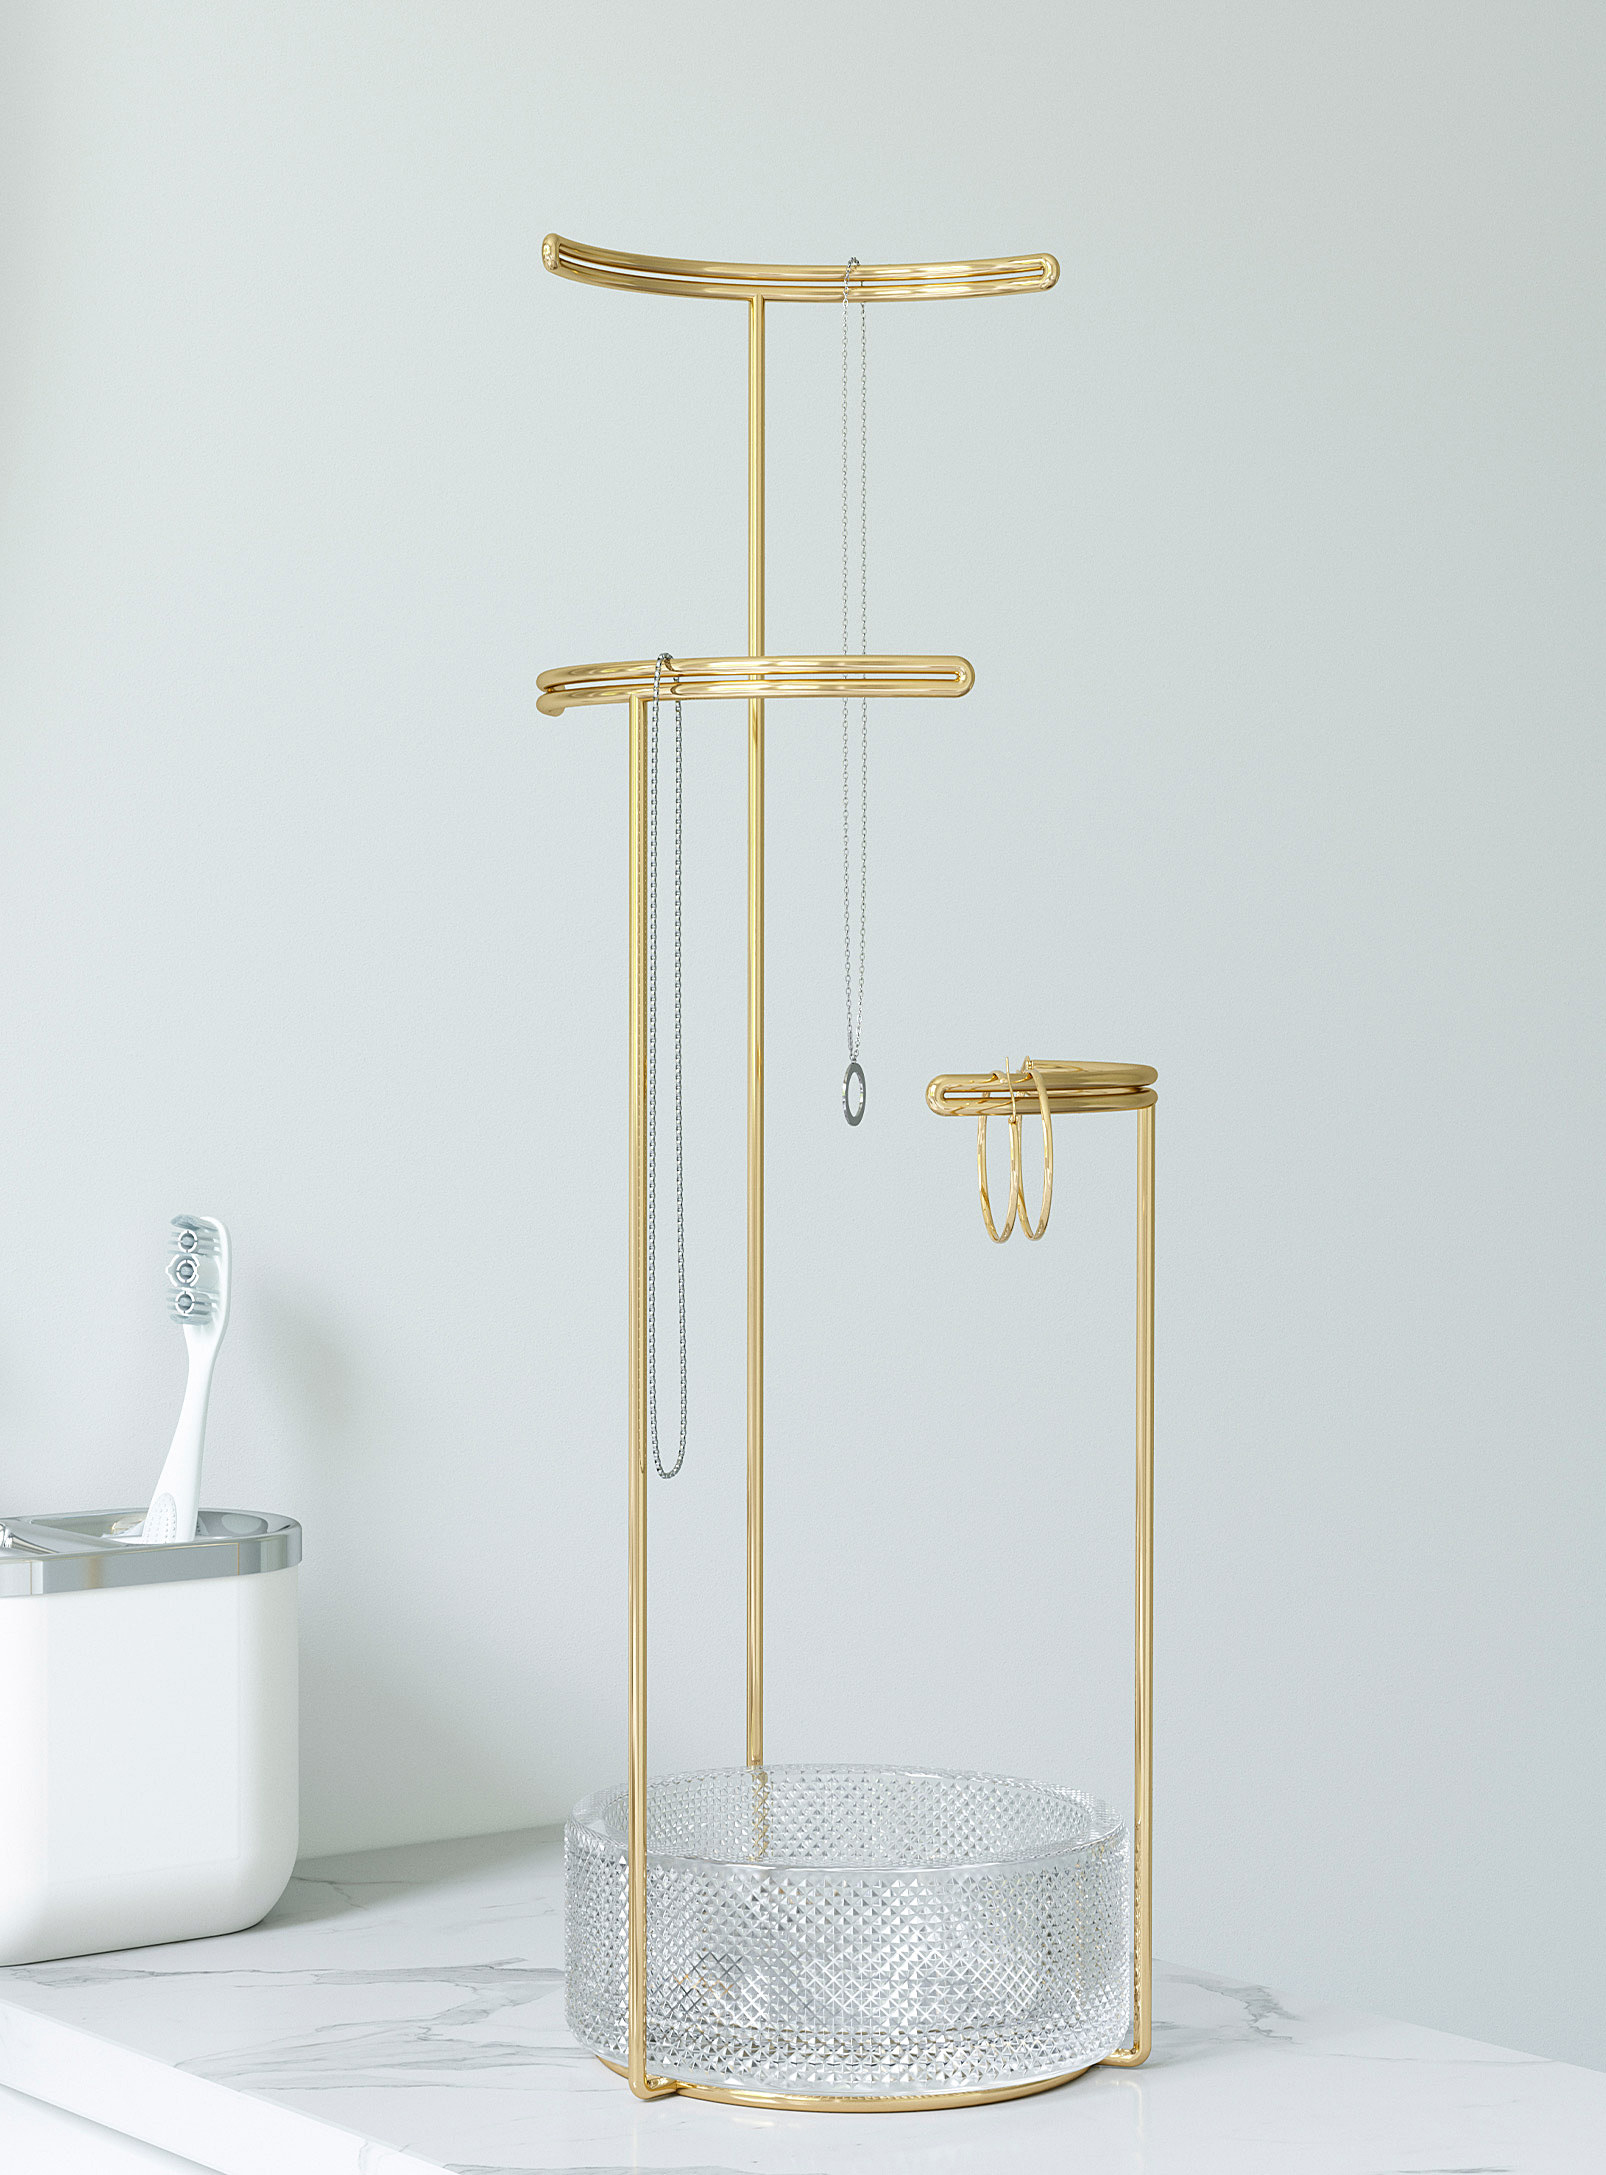 A jewelry stand with three T-shaped bars and a glass bowl at the base